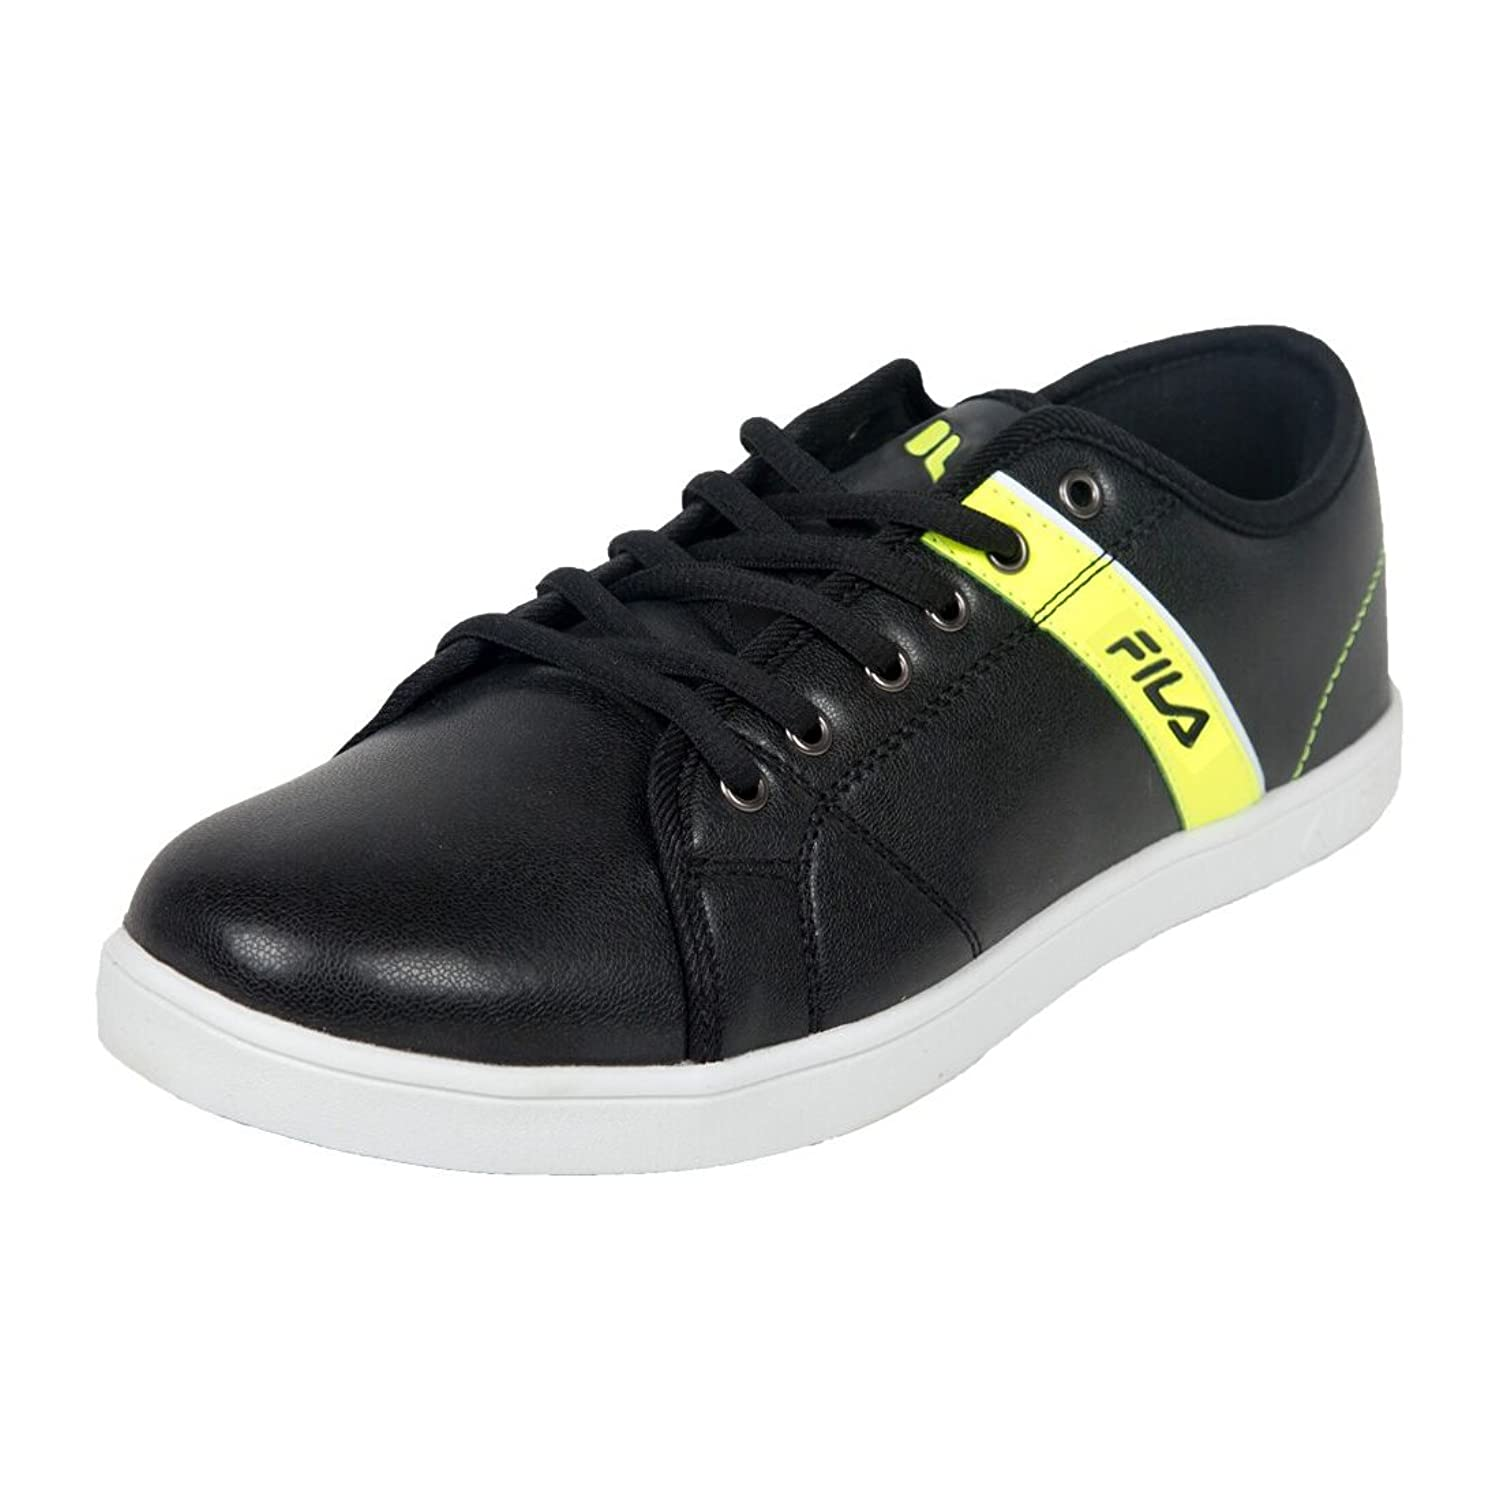 Fila Men's Vadro Sneakers